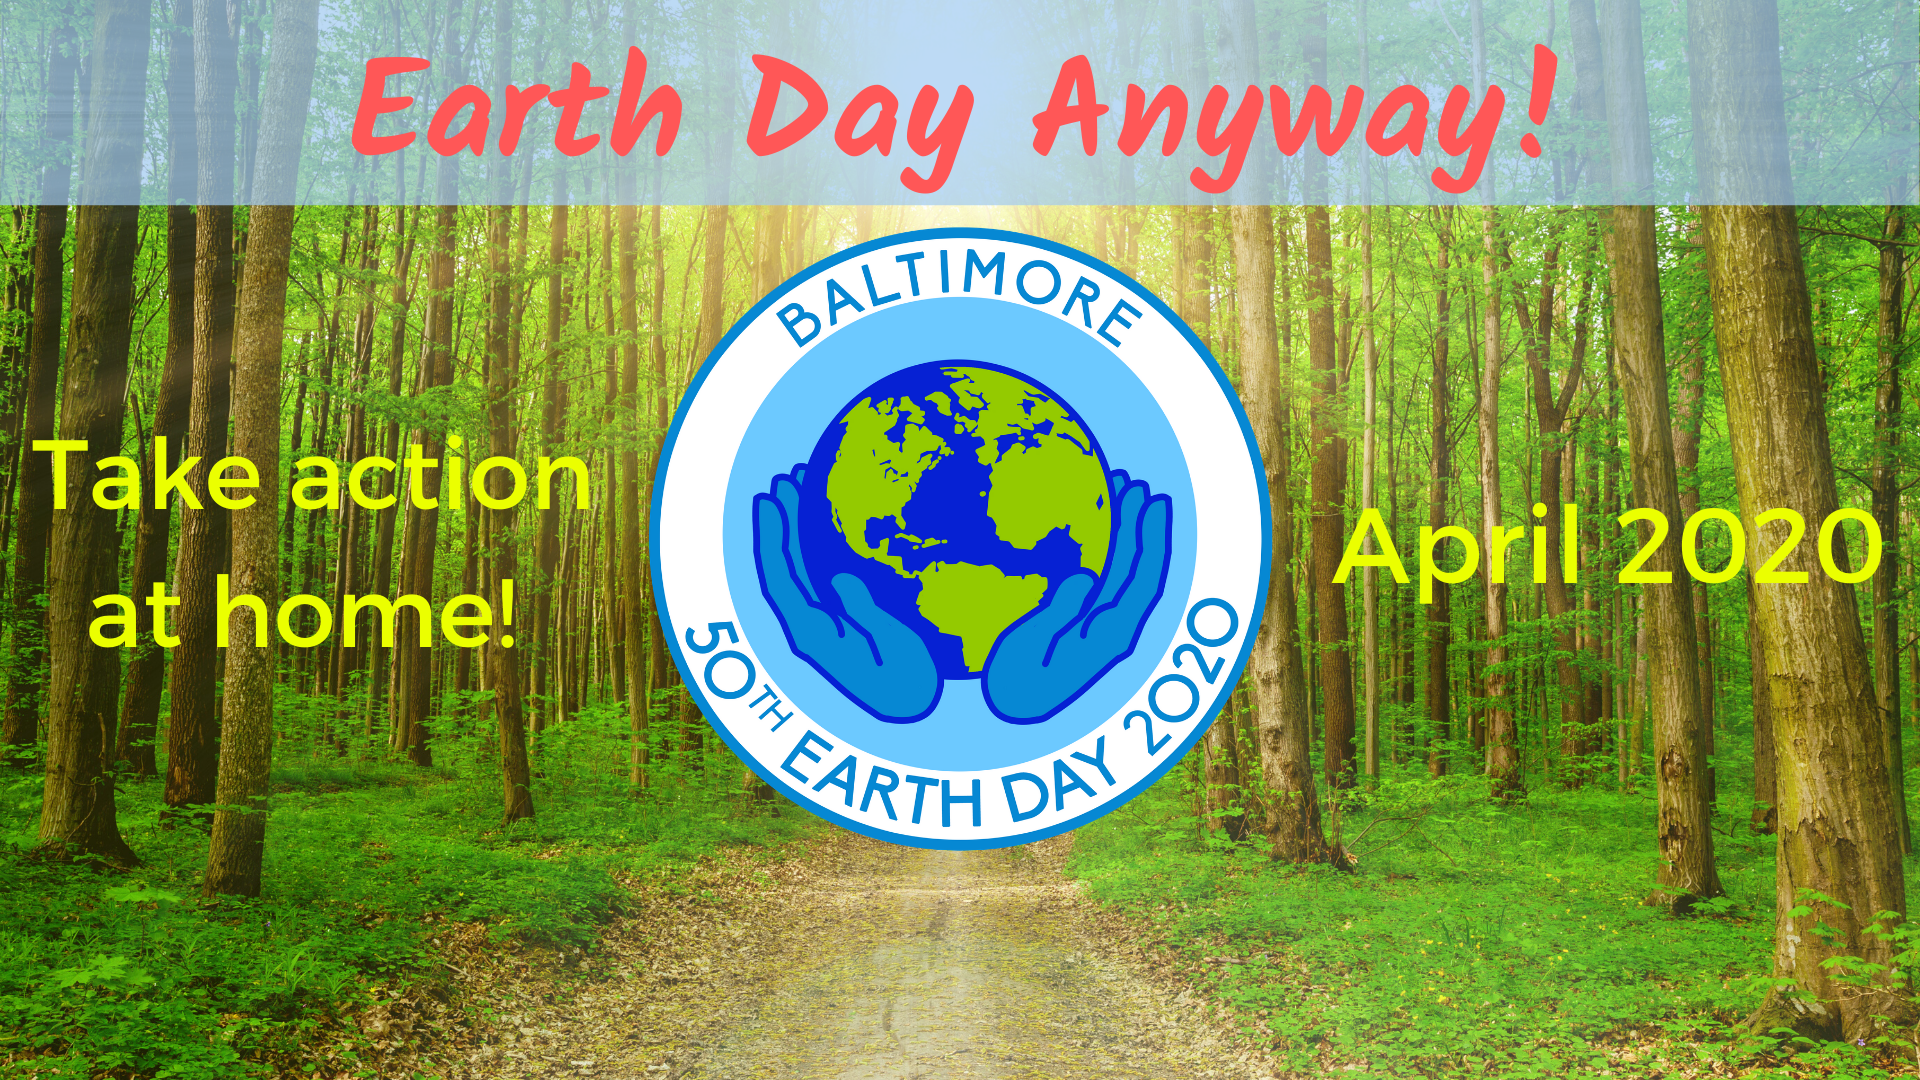 Earth Day Anyway Logo